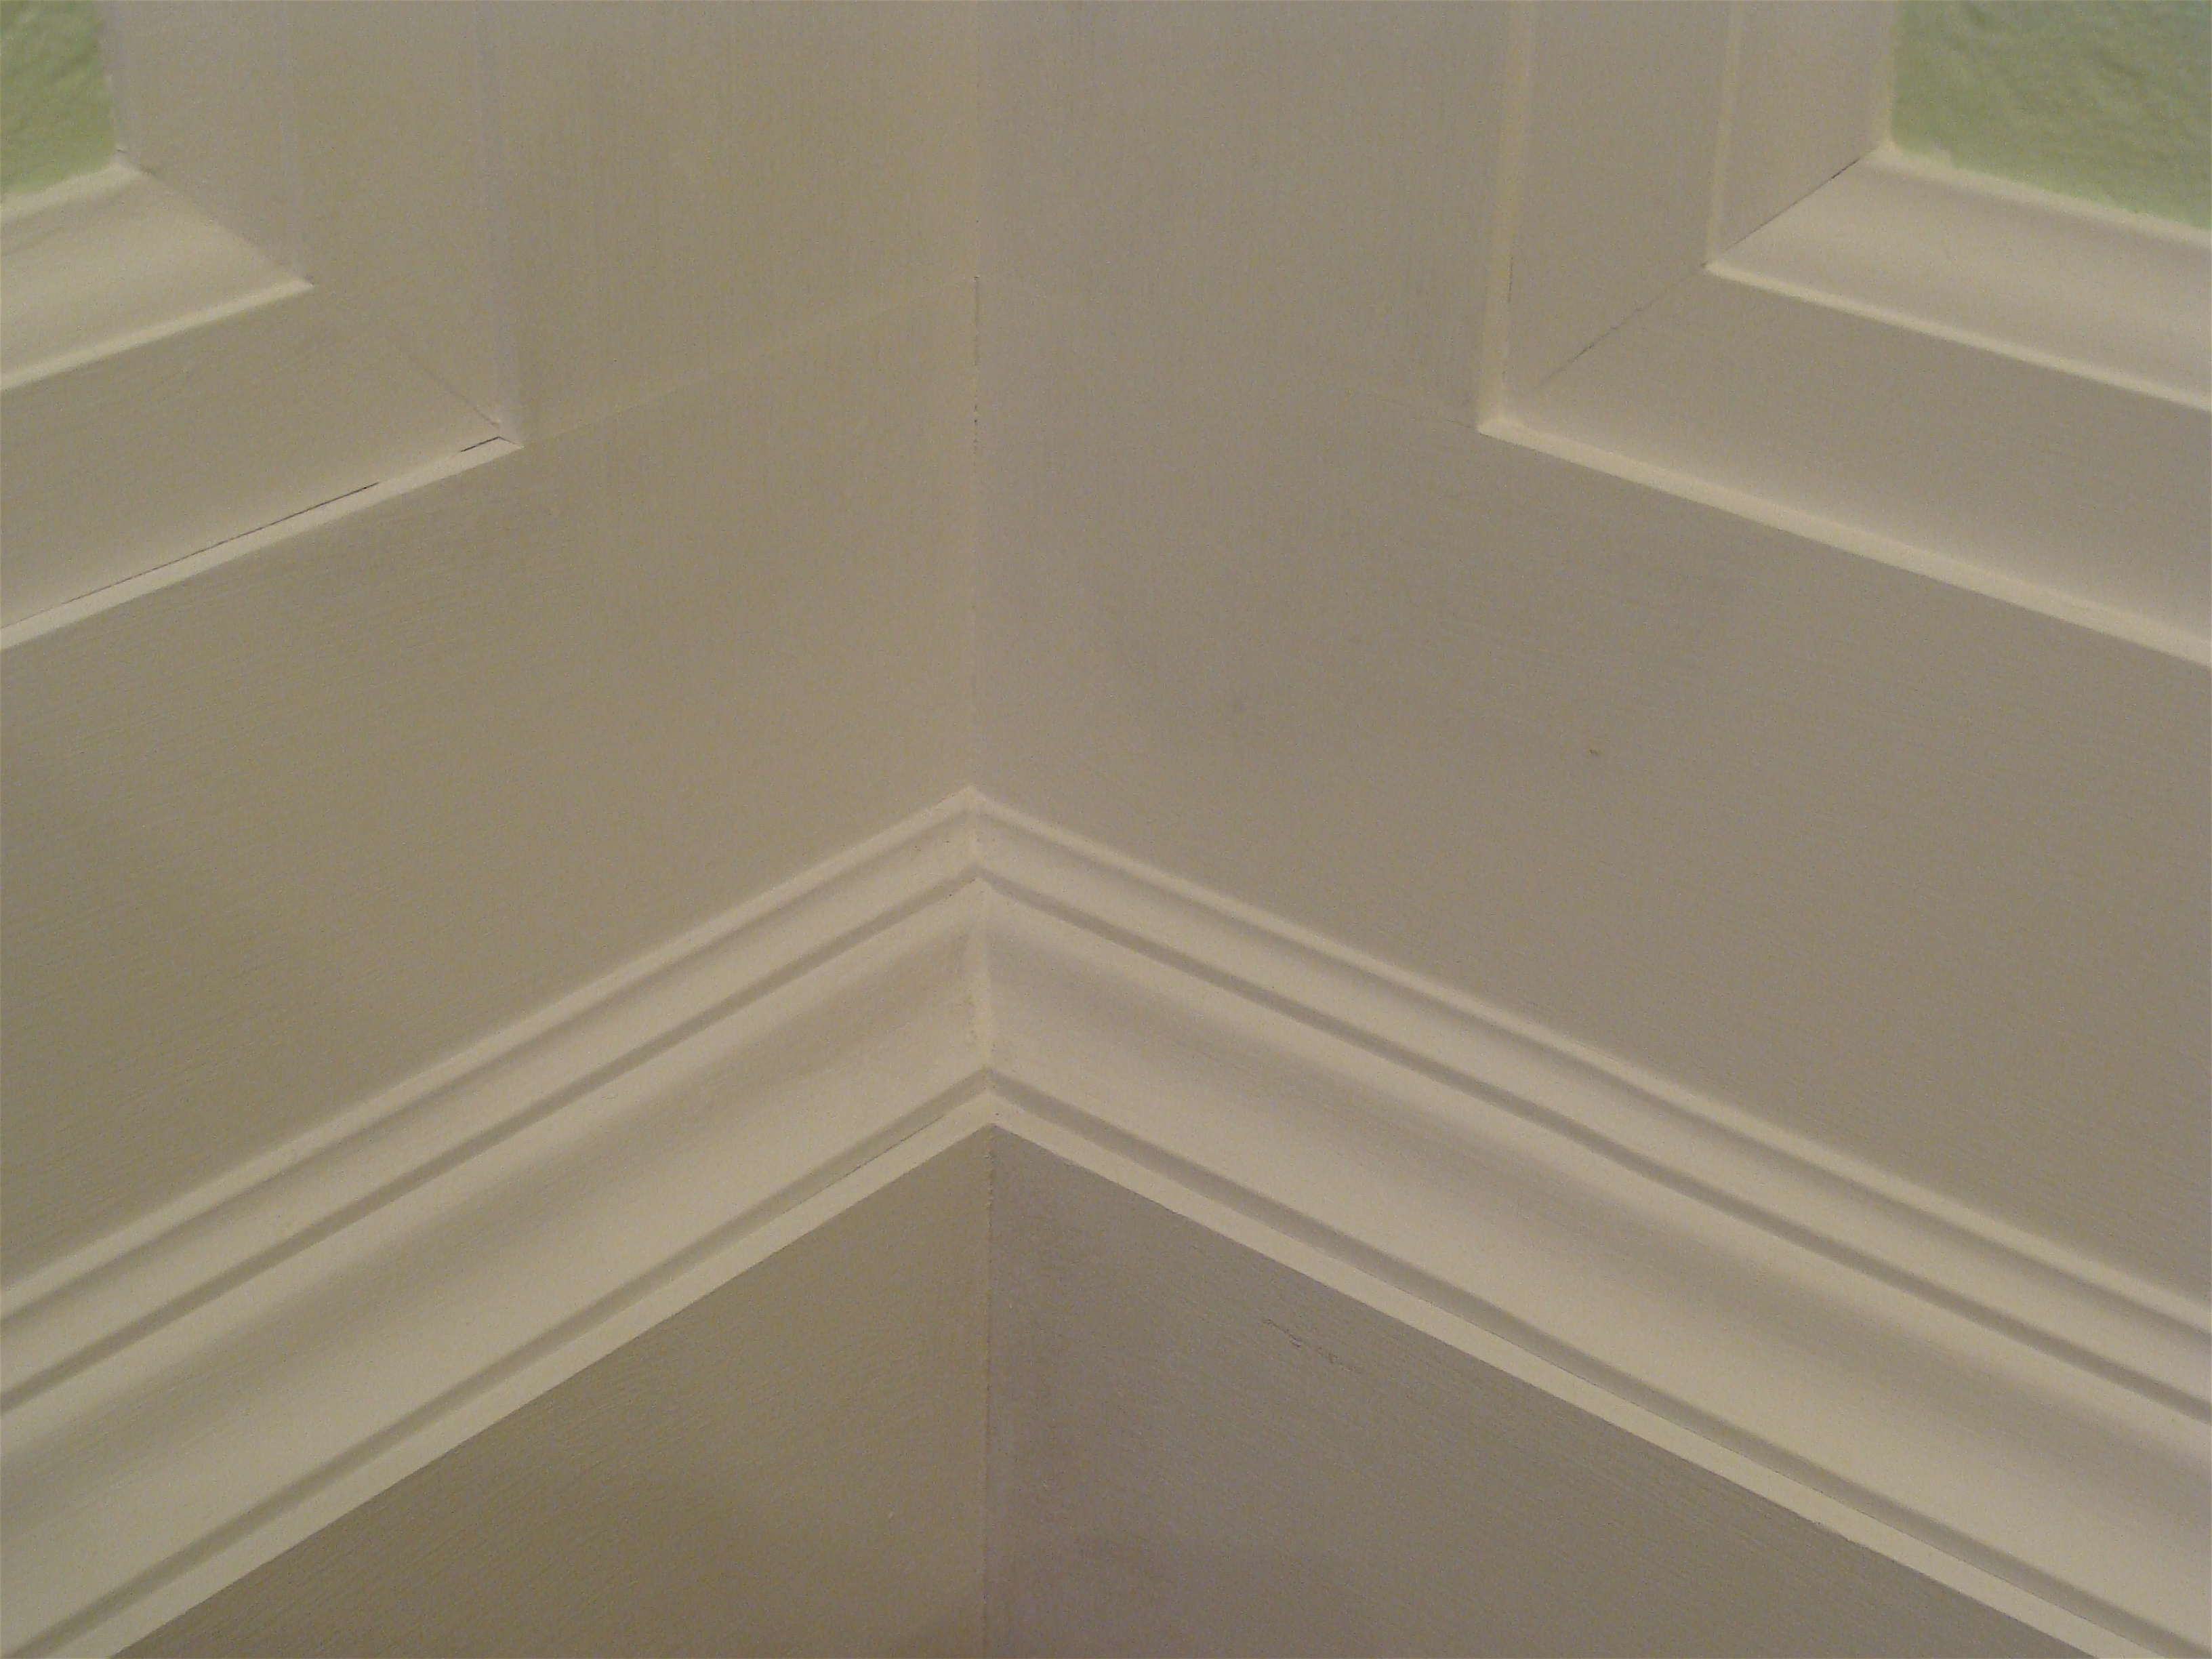 how to prime moldings. 5 2 priming baseboard skirting board molding   The Joy of Moldings com